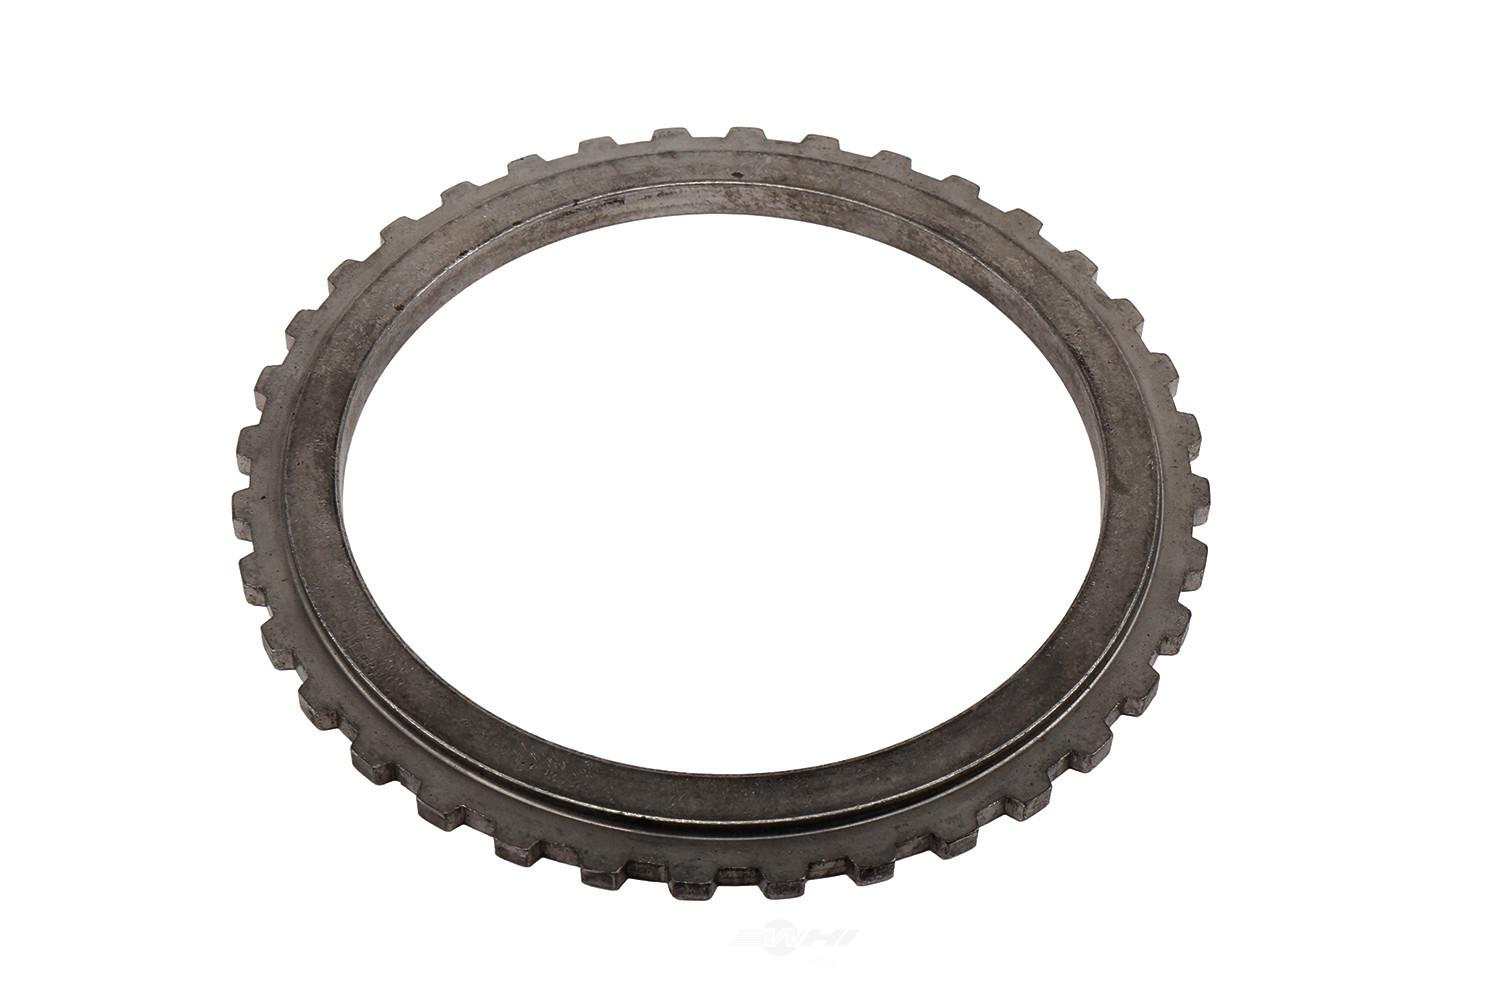 ACDELCO GM ORIGINAL EQUIPMENT - Automatic Transmission Clutch Backing Plate - DCB 24223827